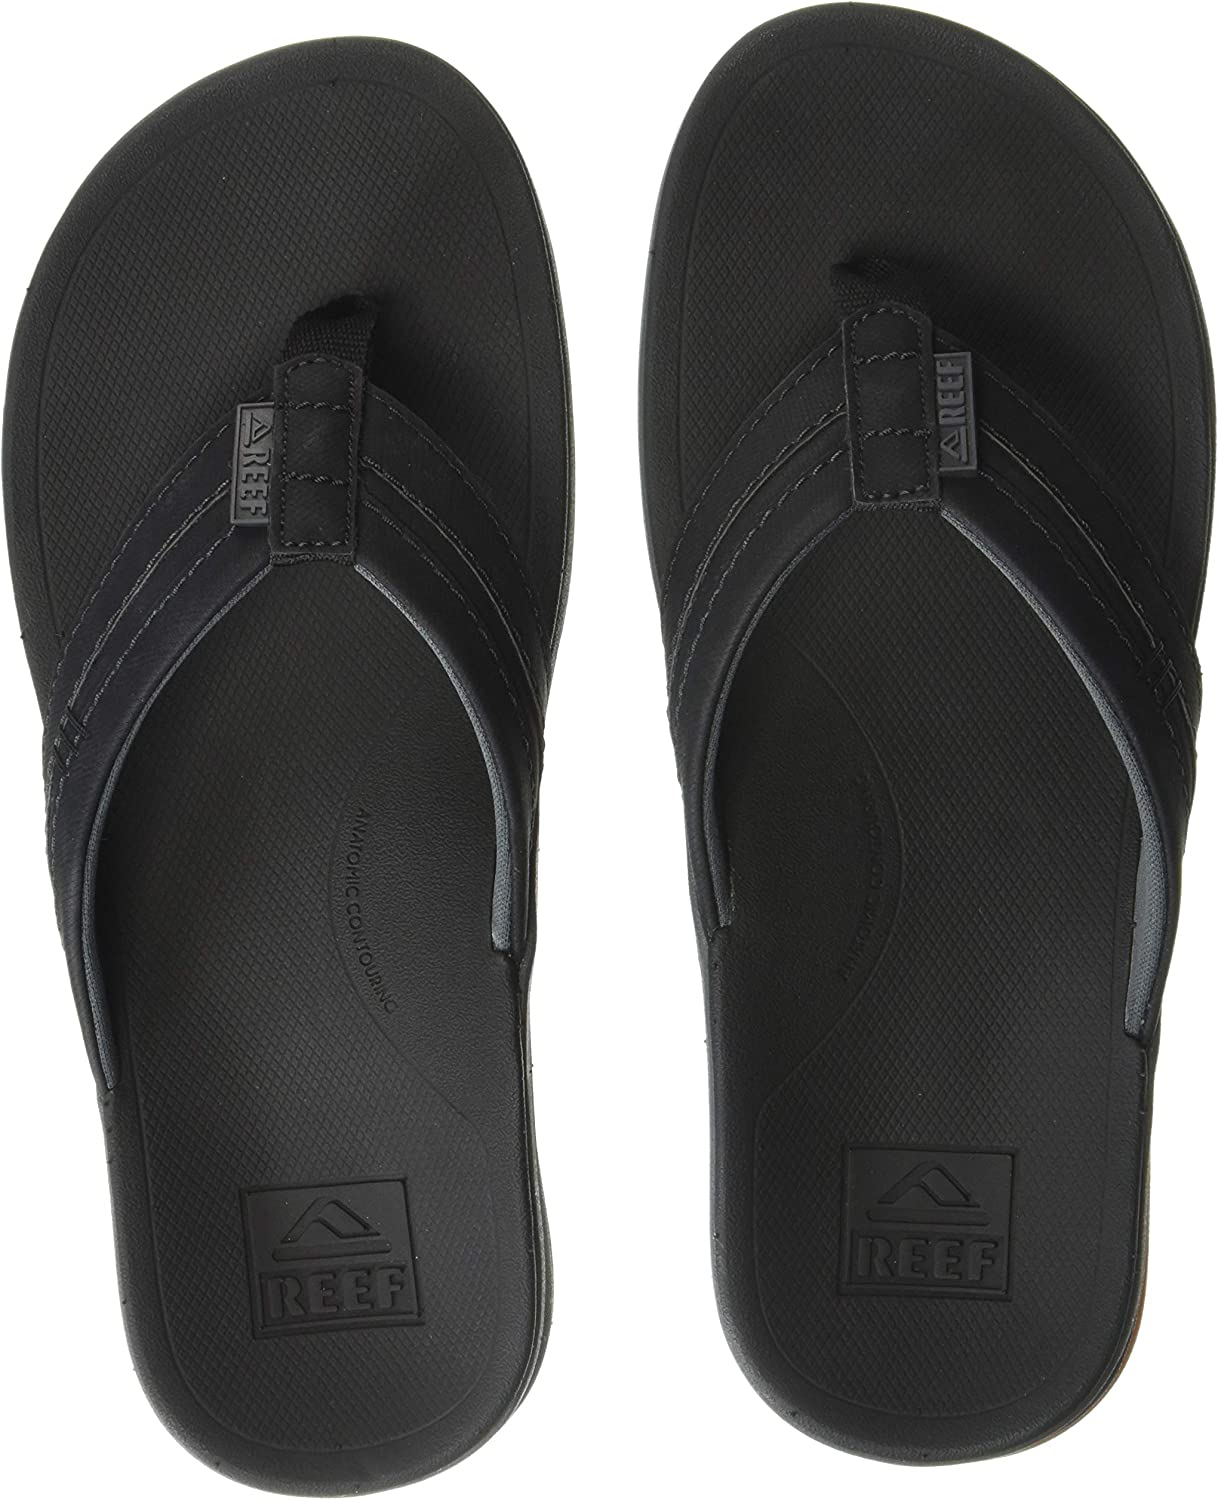 Reef Ortho-Bounce Coast – Orthotic Sandals for Men